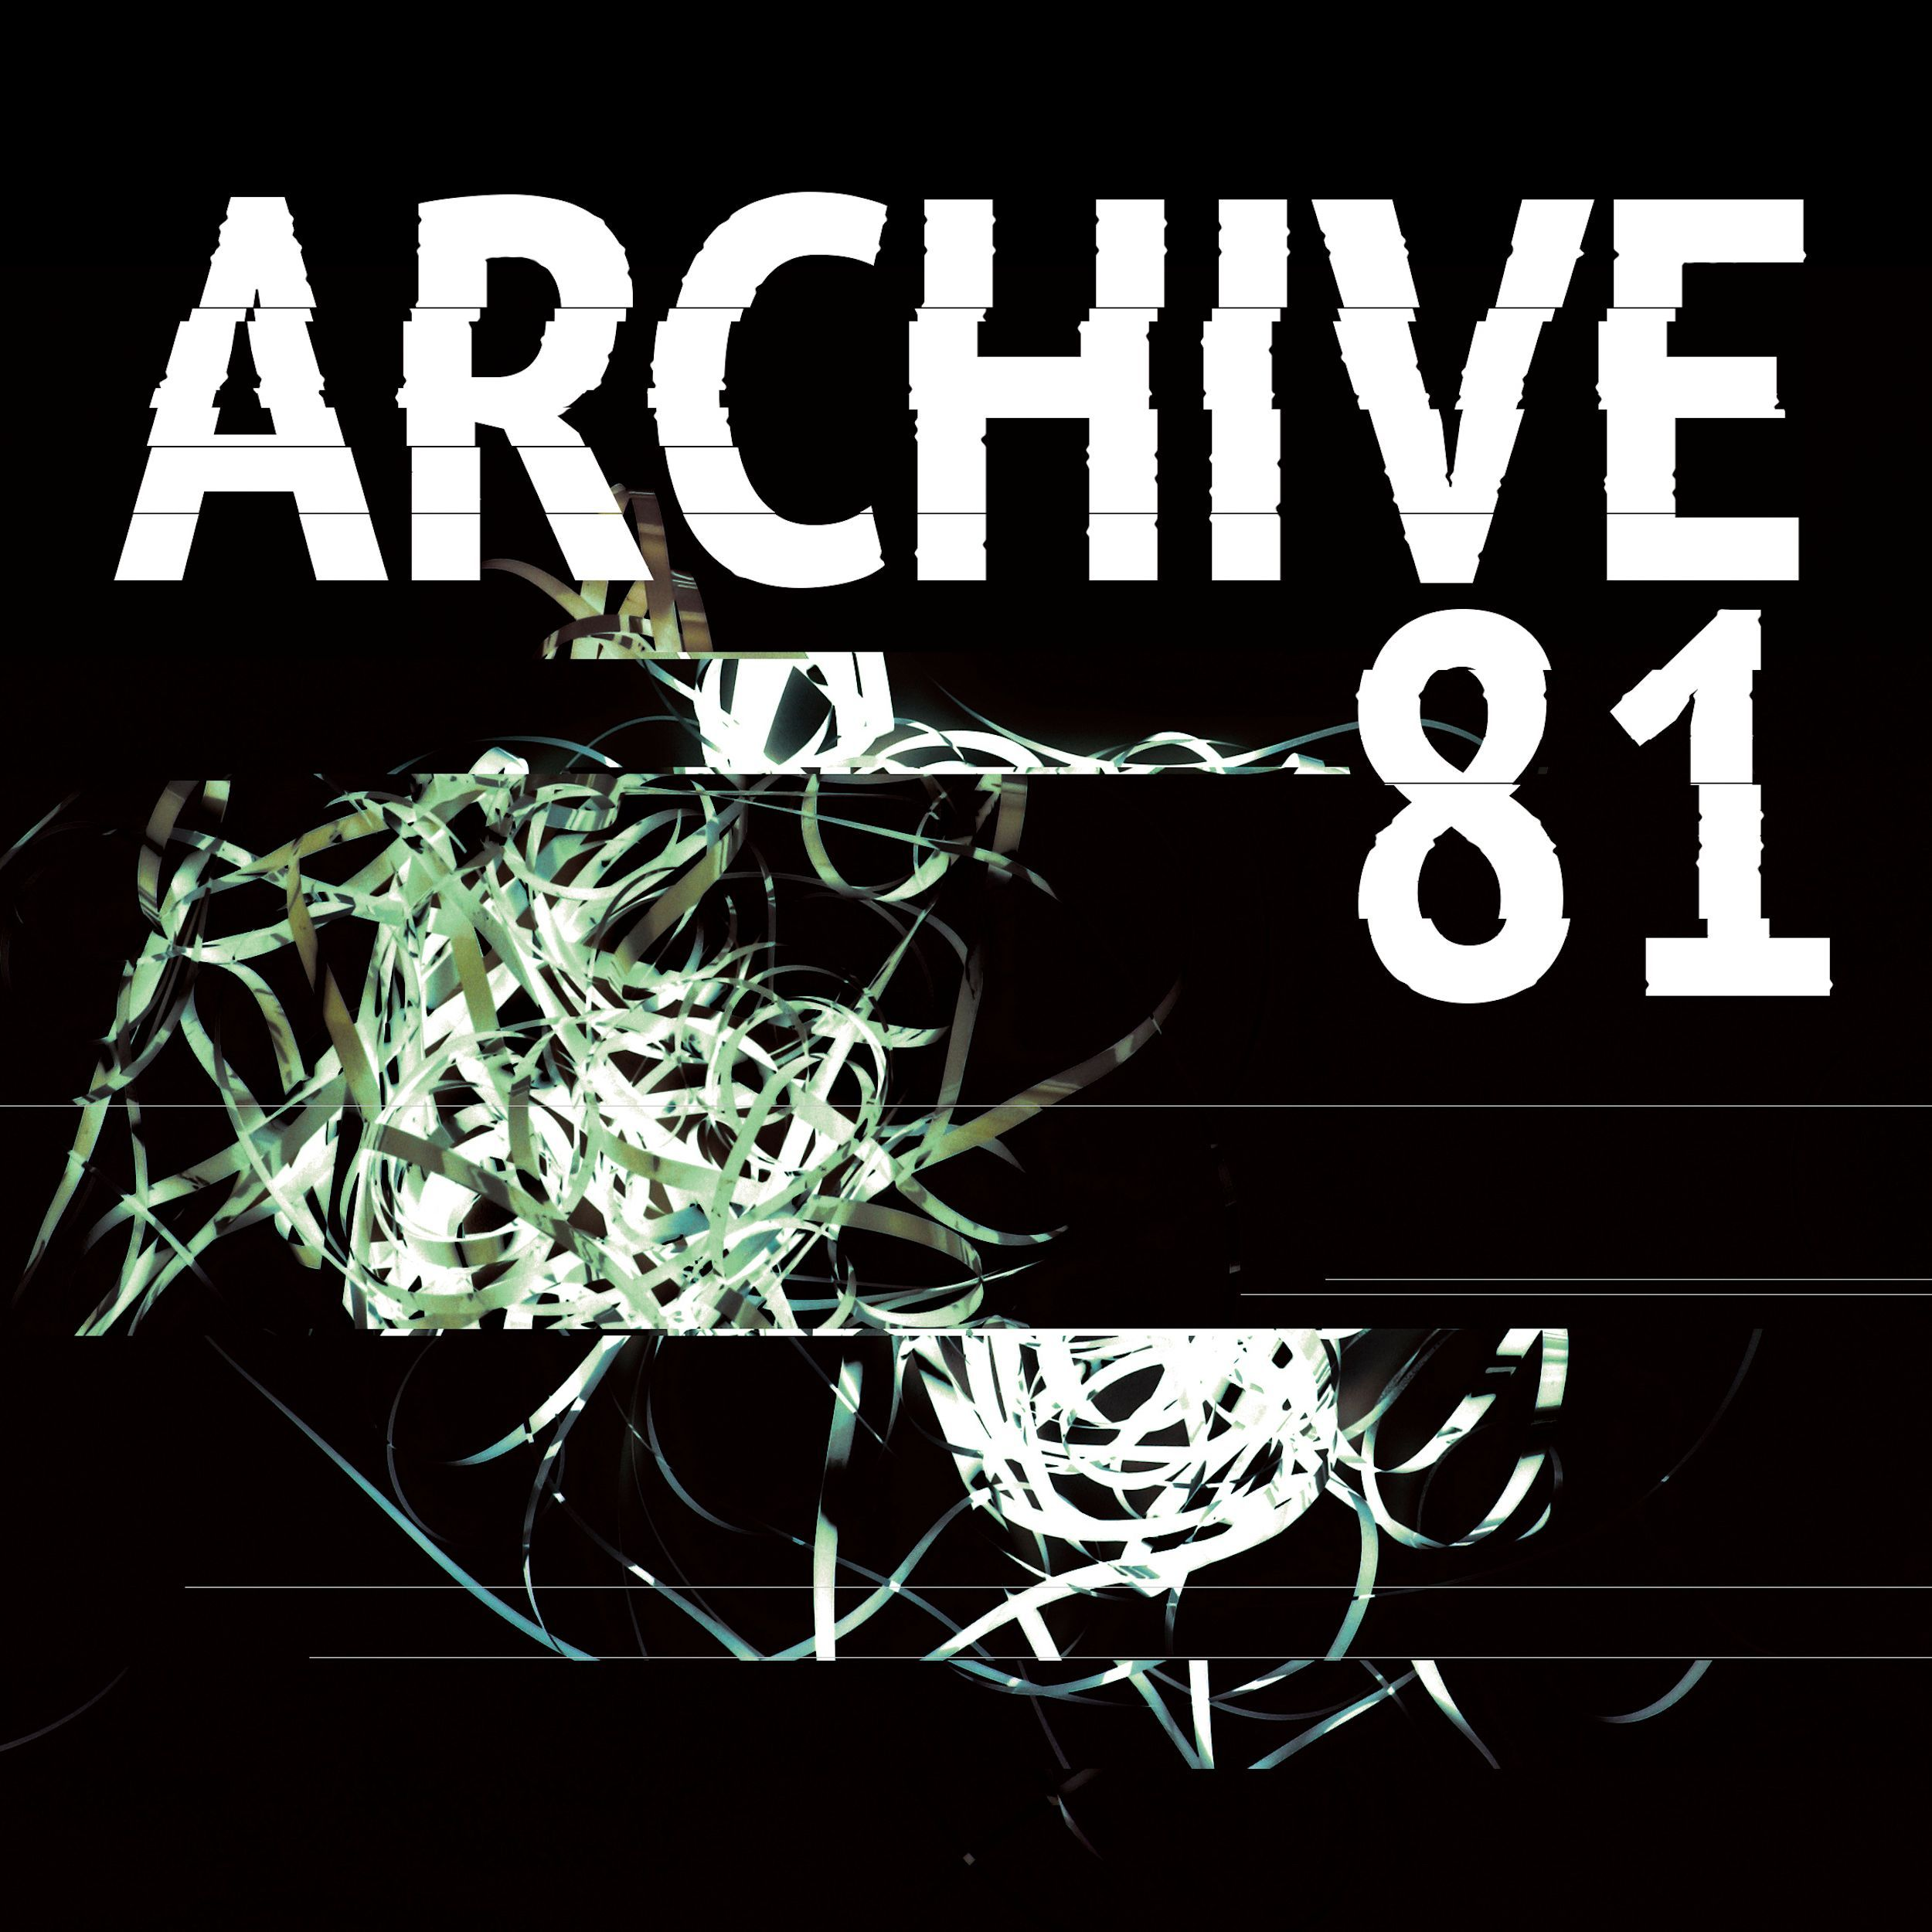 Archive 81